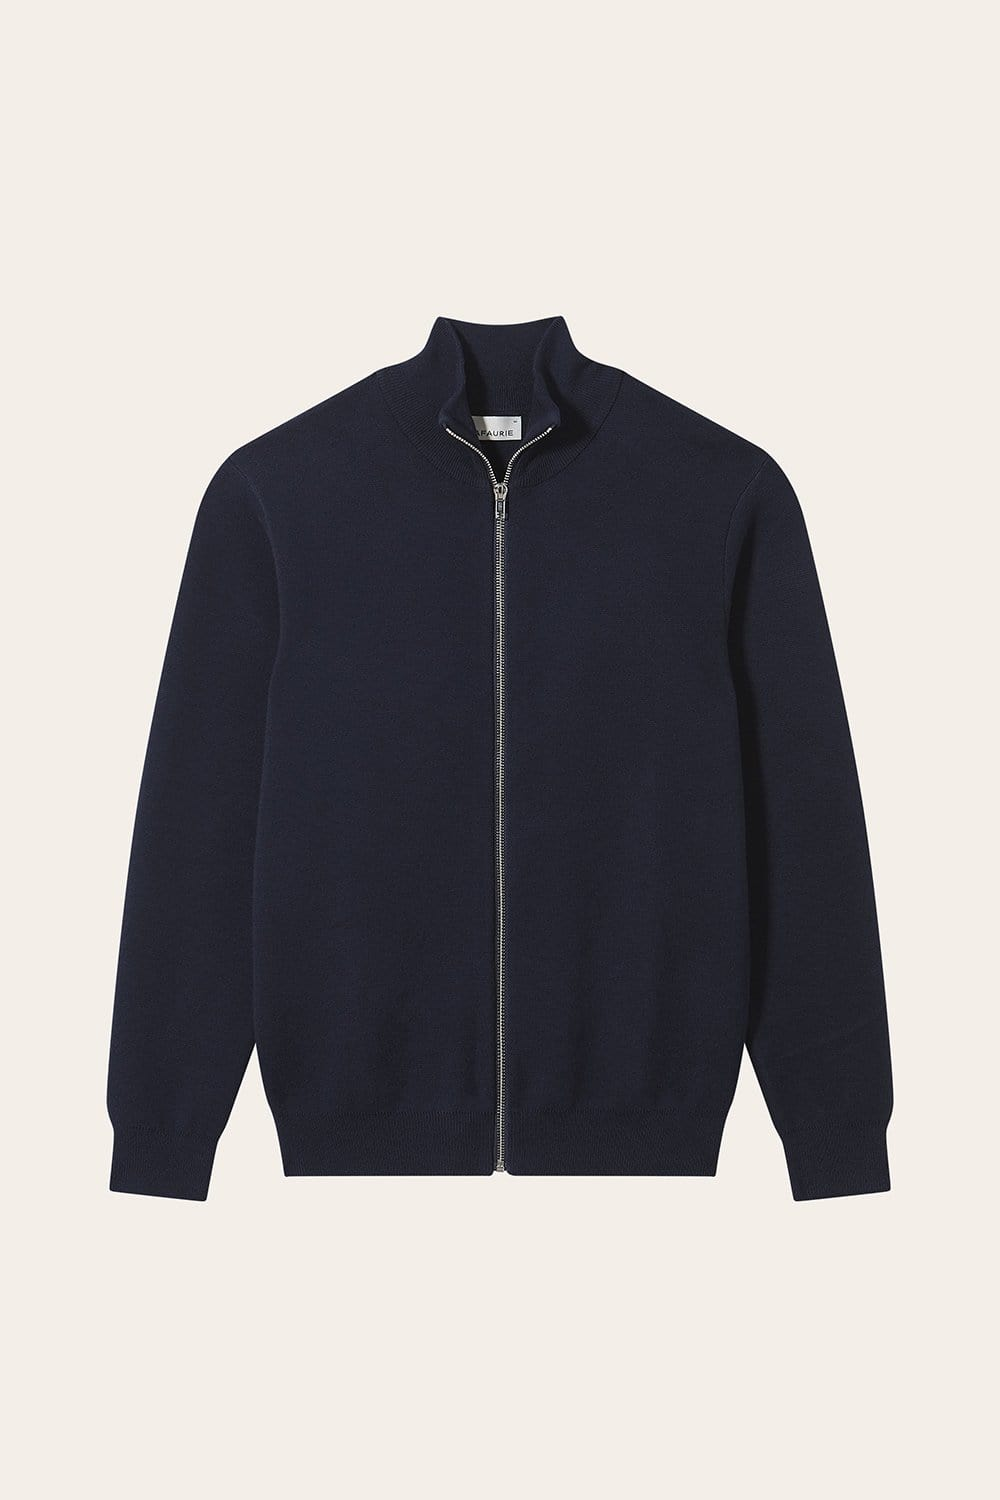 Teddy Zipper - Navy